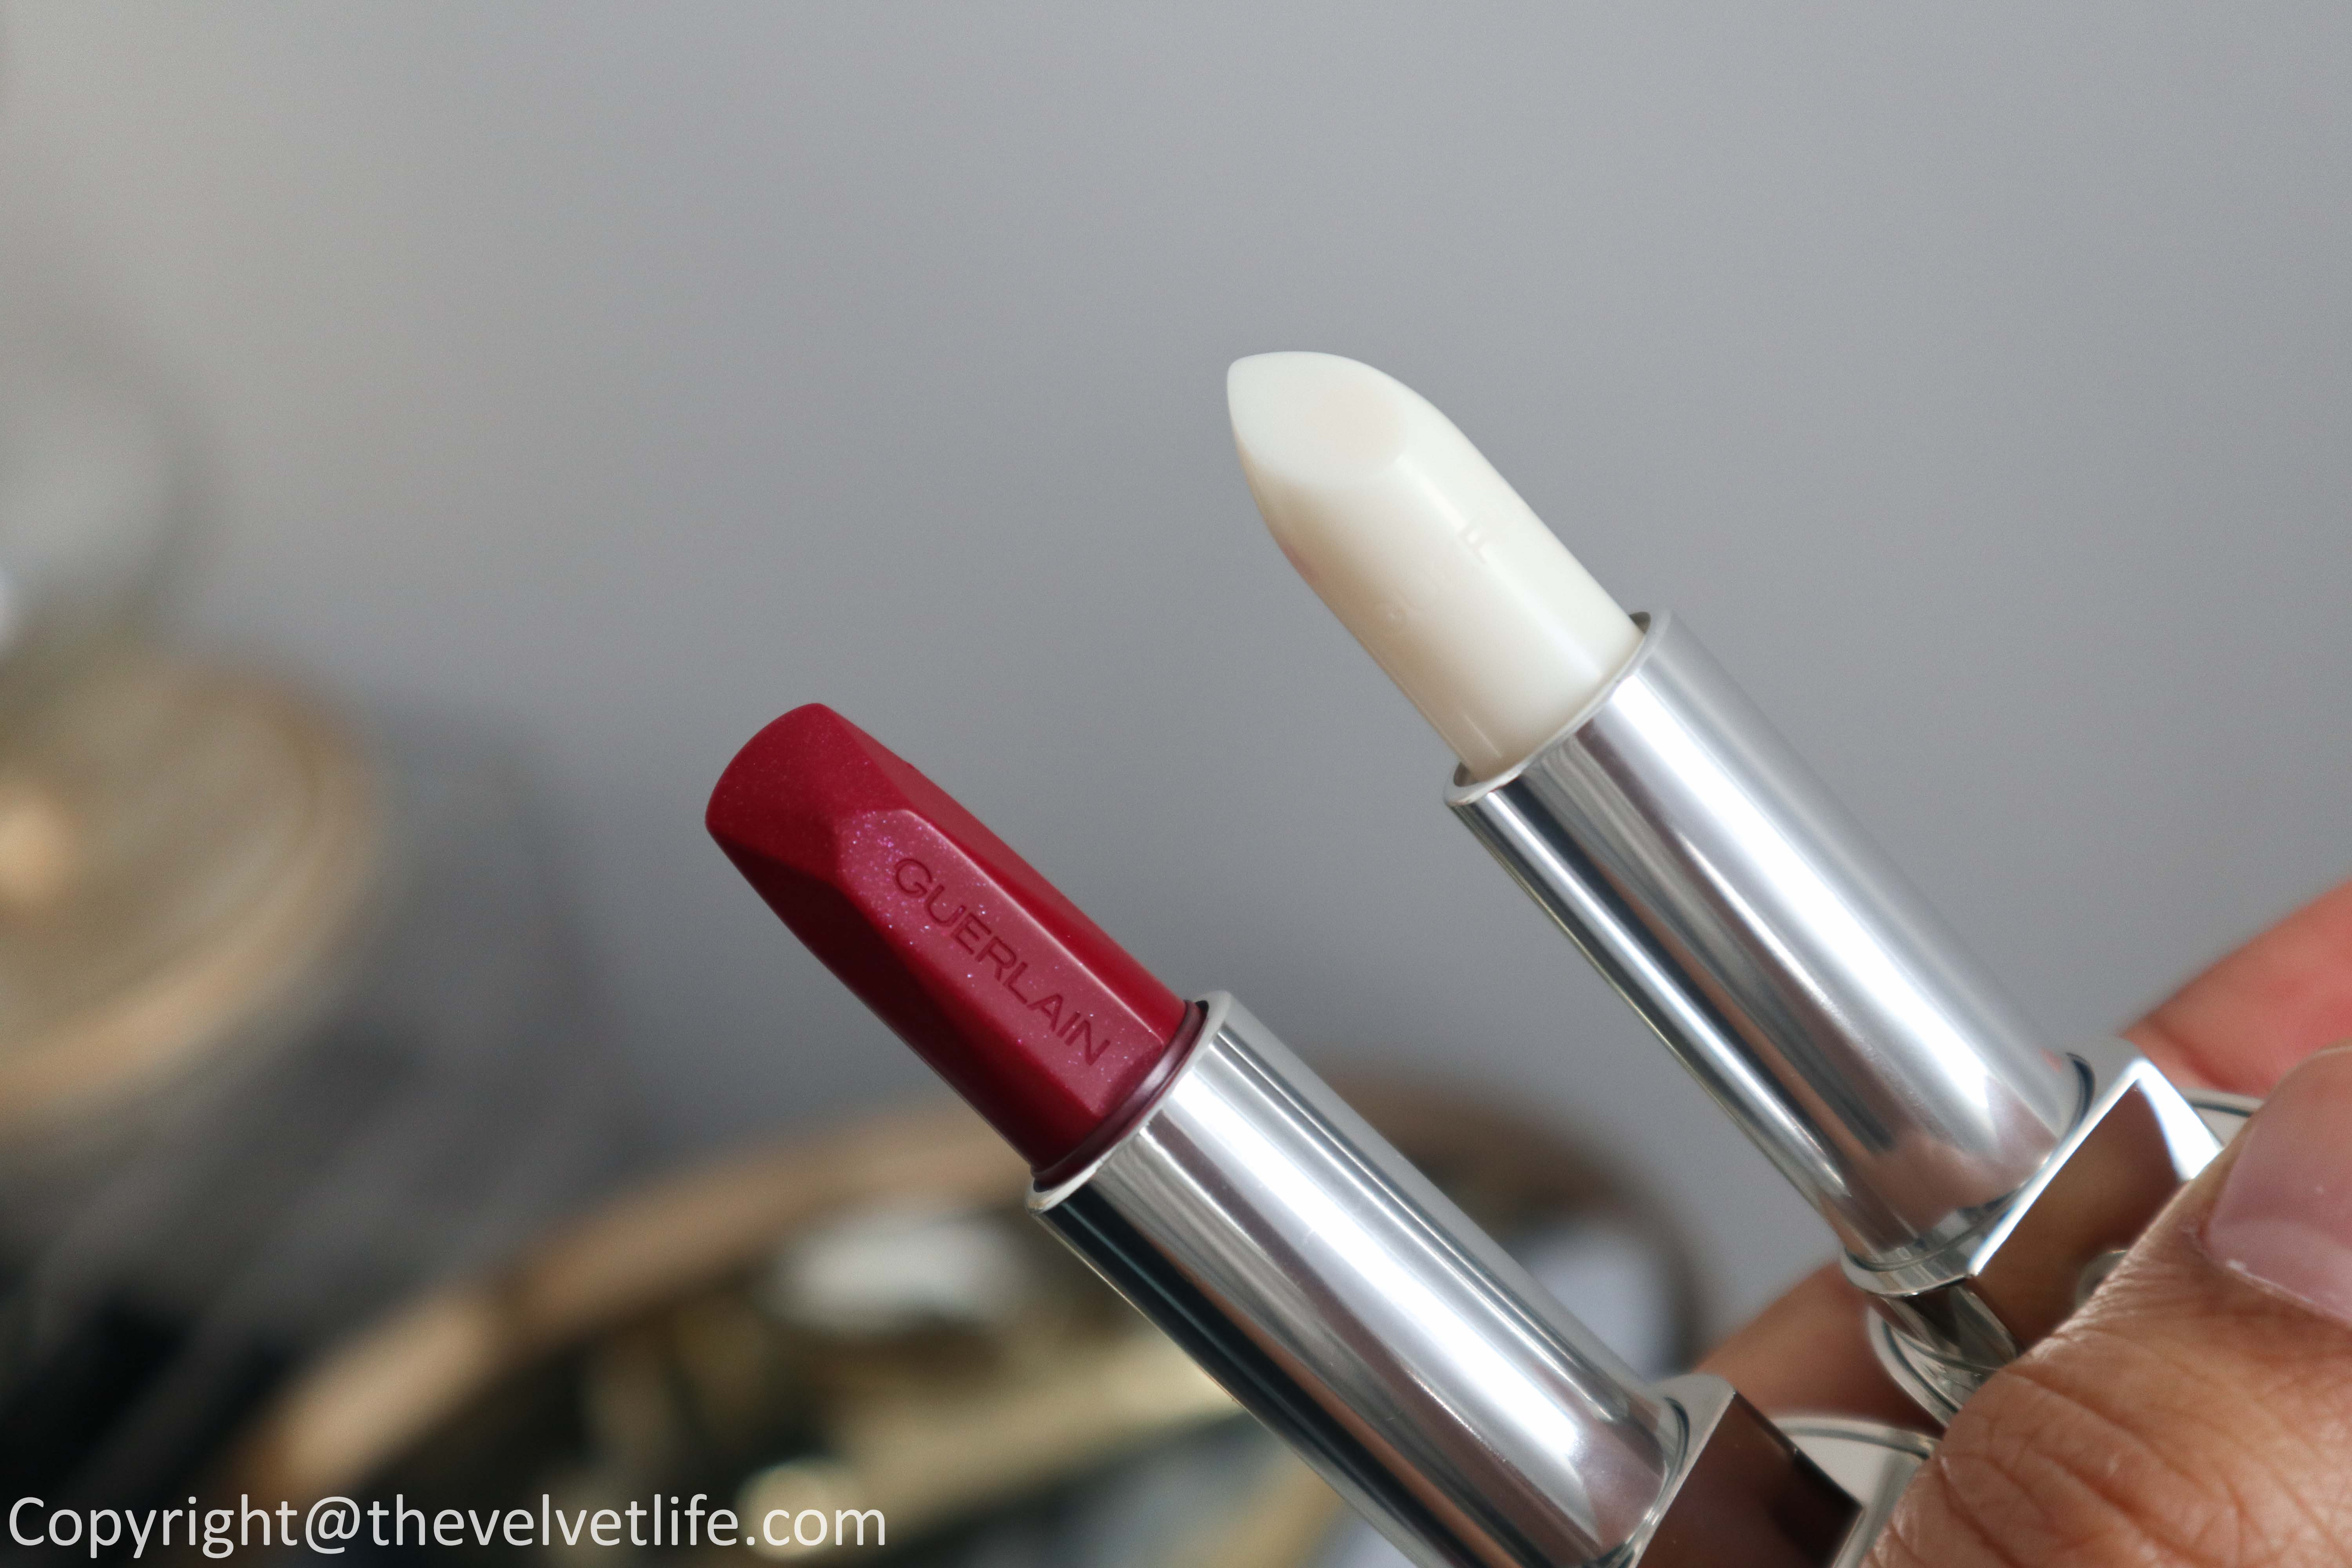 Guerlain Golden Bee Holiday 2020 collection review swatches of Golden Bee Palette, Meteorites Golden Bee, Rouge G lipstick